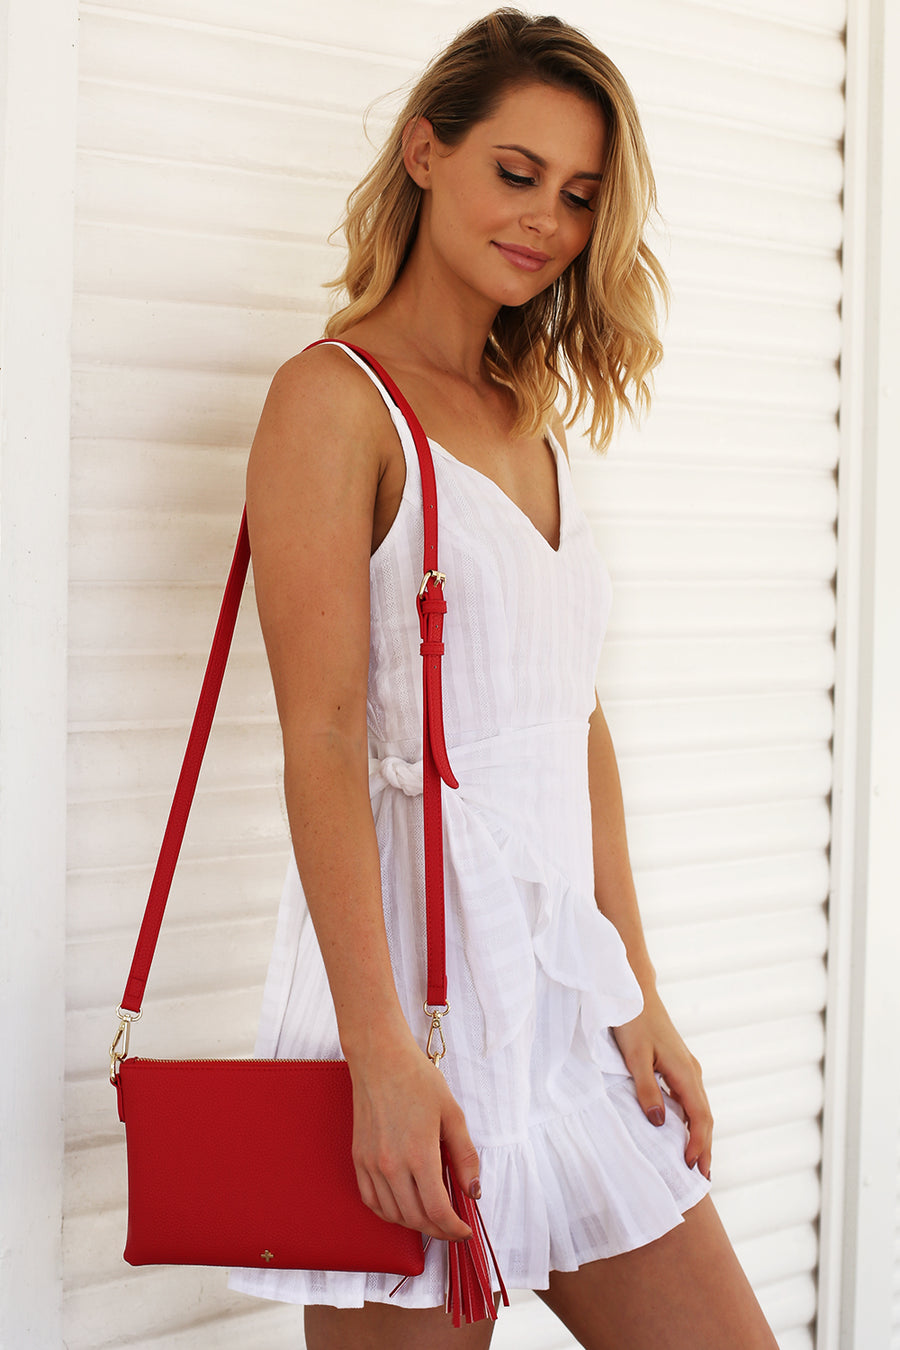 Kourtney Clutch in Red for $49.95